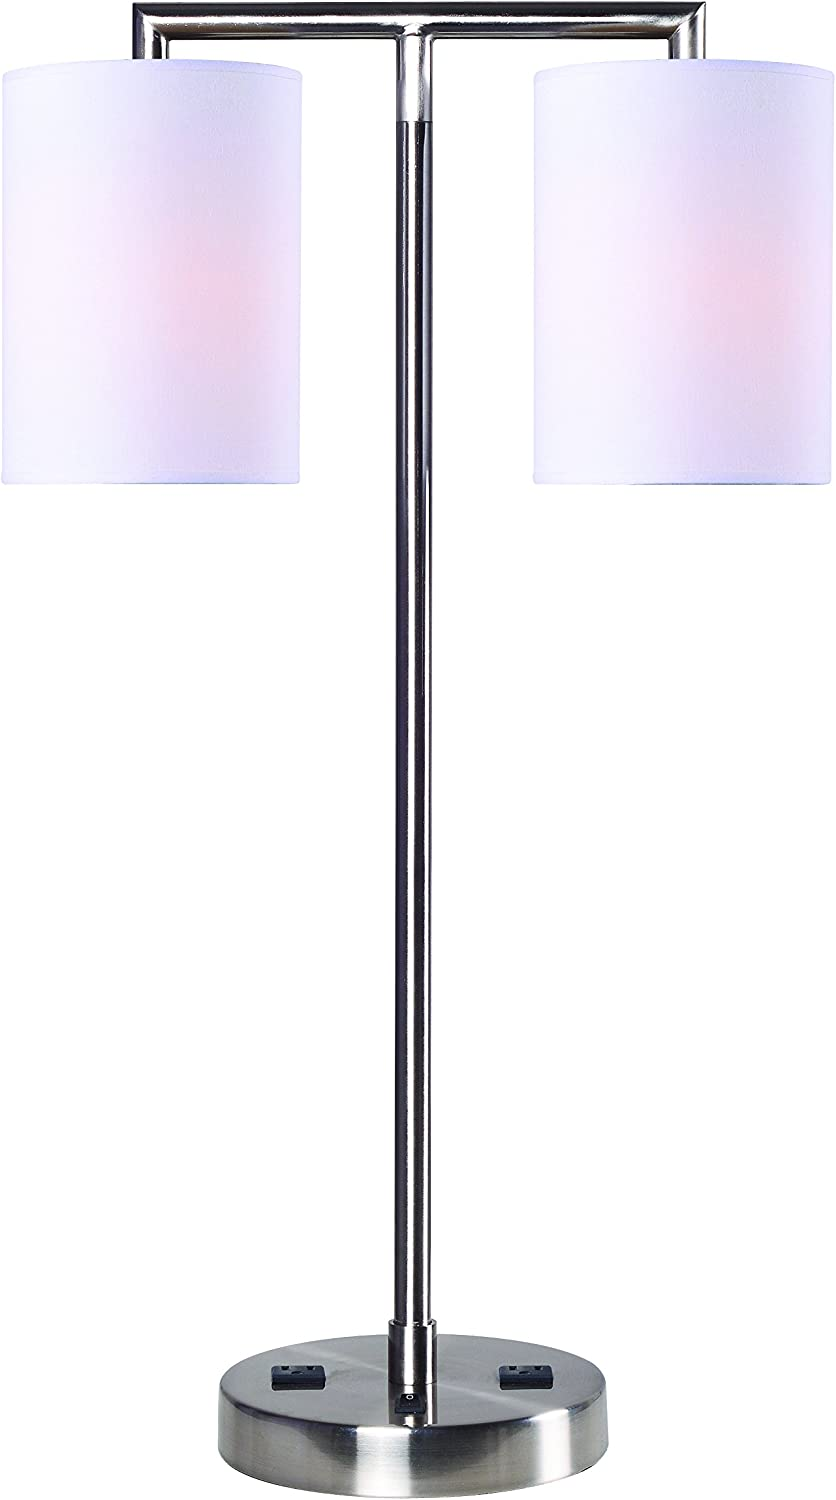 """Kenroy Home Maddox Table Lamp, 27"""" H x 16.5"""" W x 8"""" D, Brushed Steel Finish"""